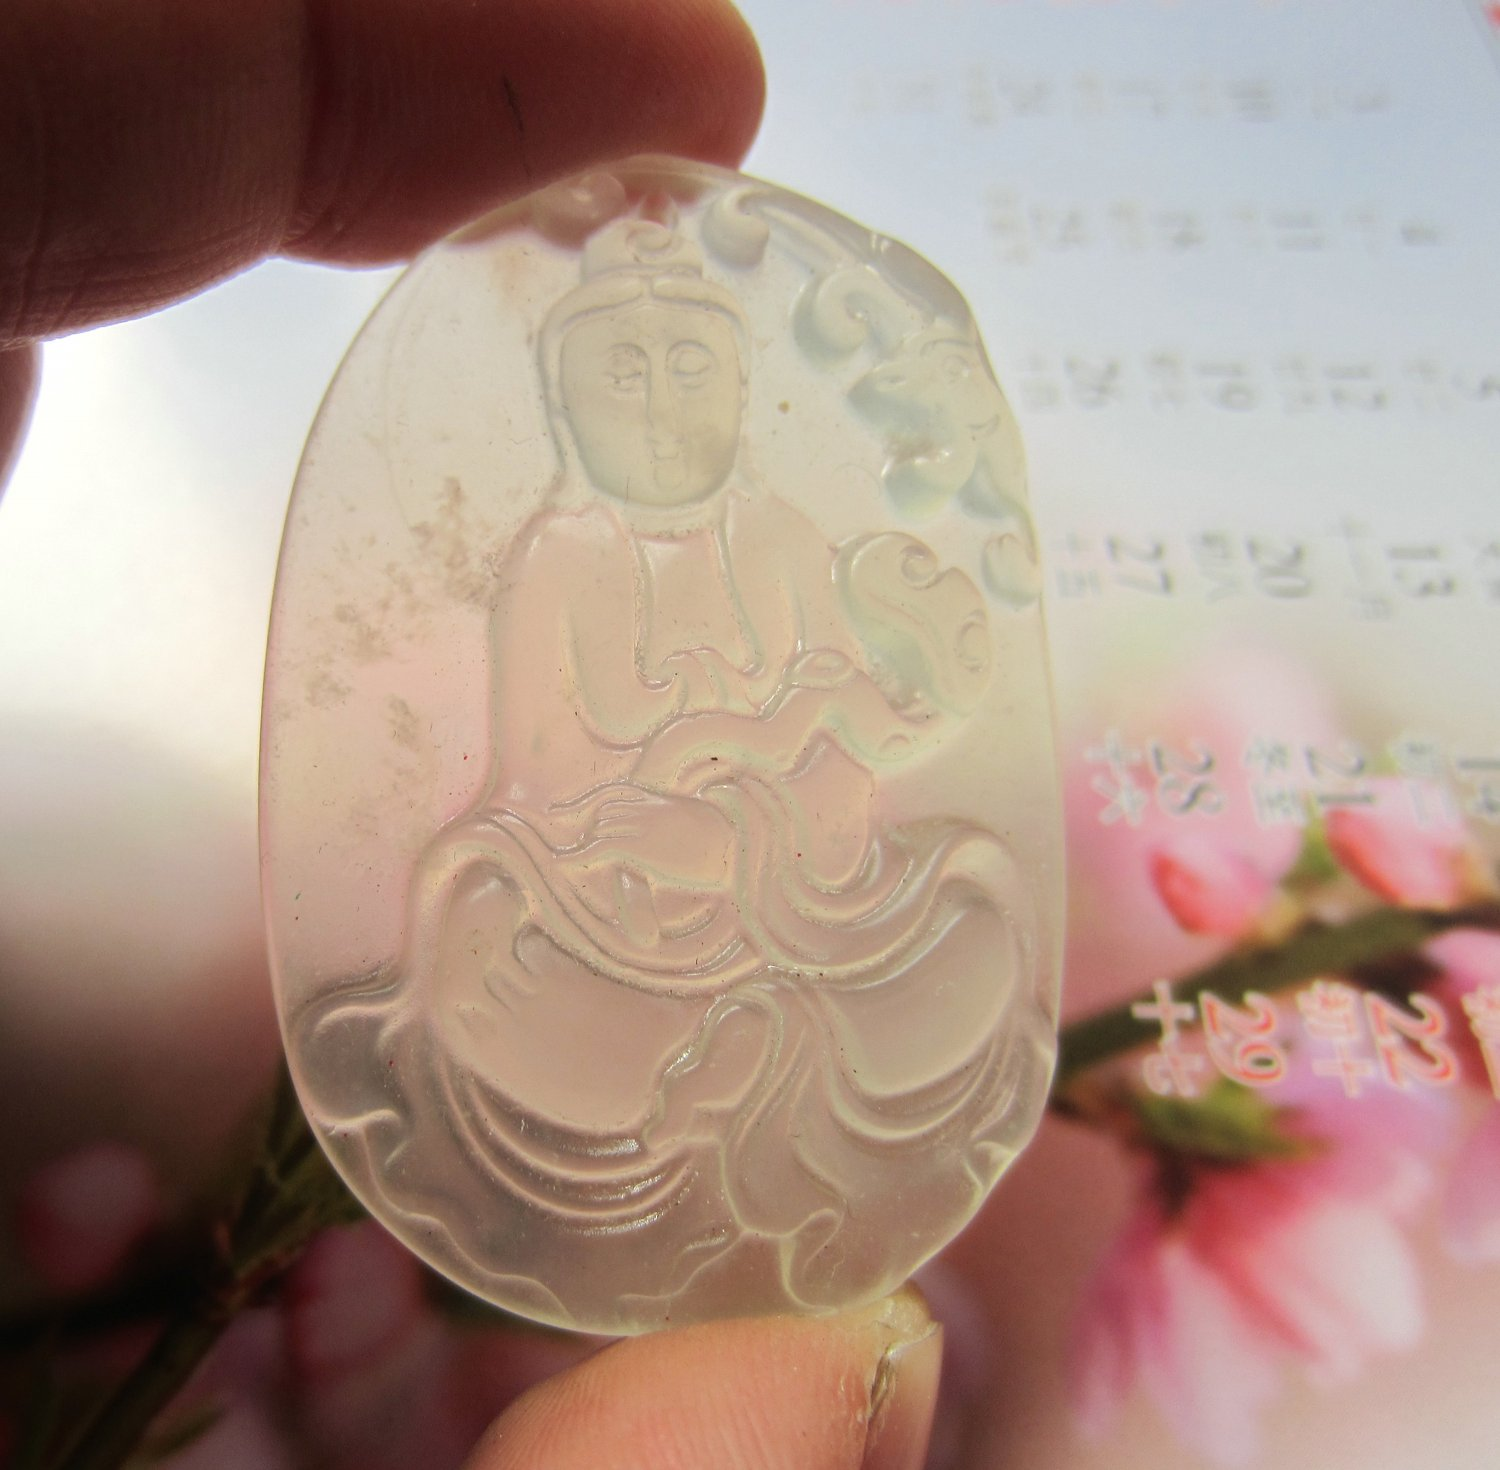 Charming jade carving amulet ice flowing necklace cost guanyin bodhisattva (A2)